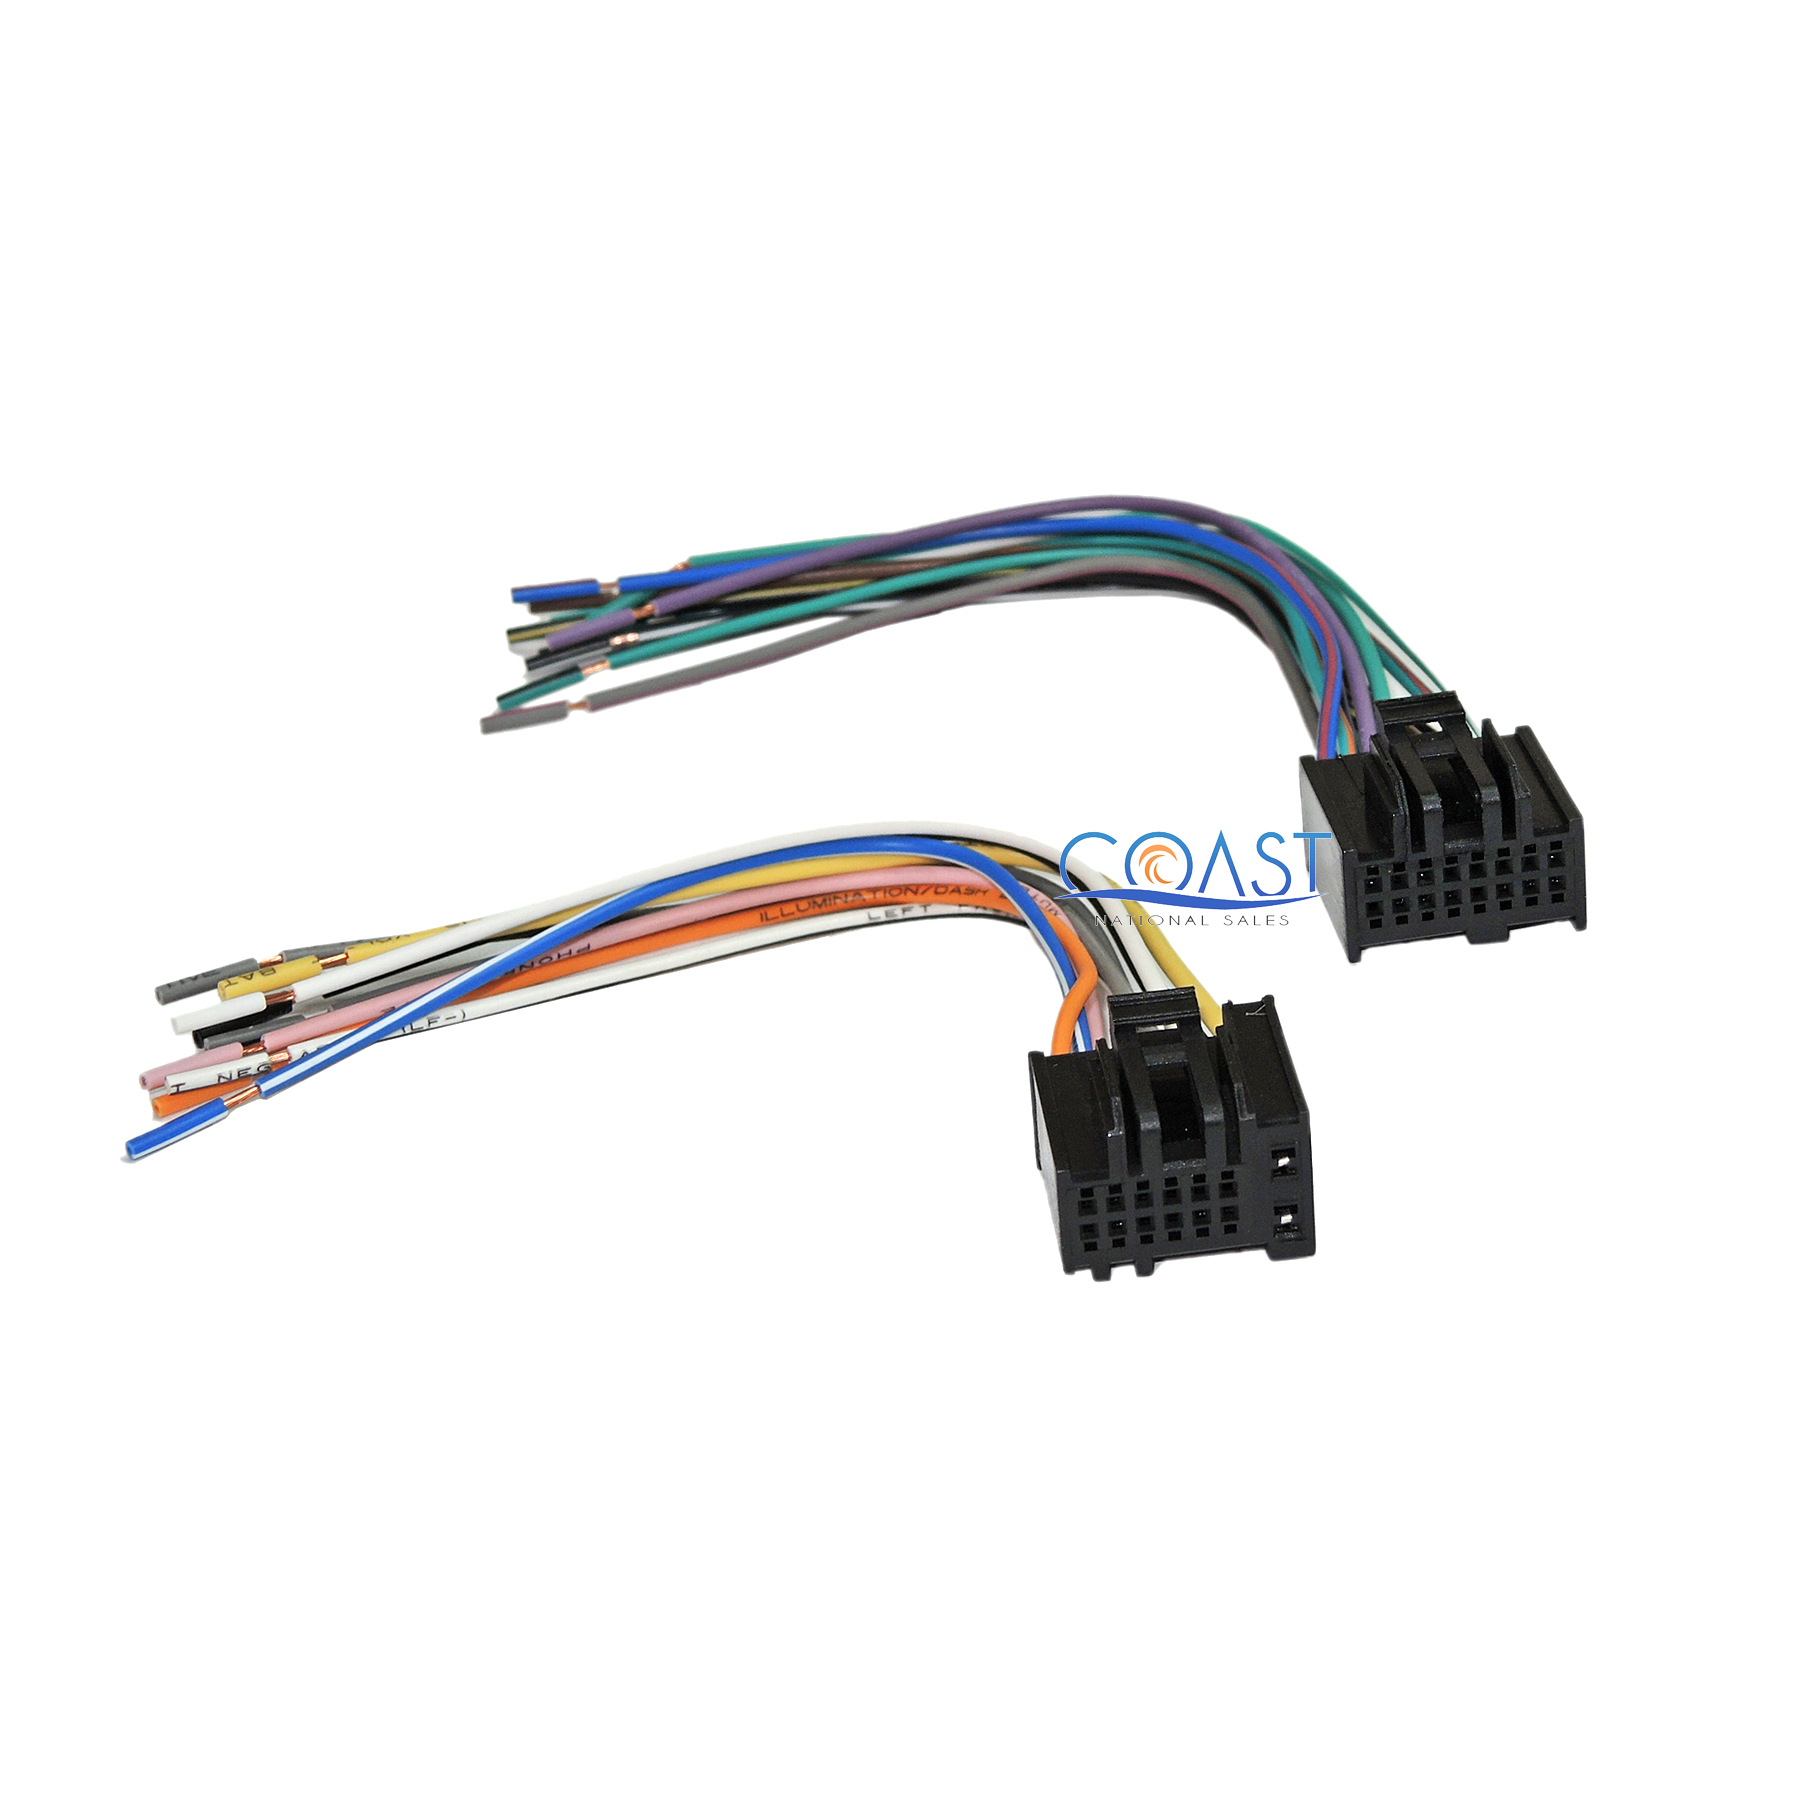 Chevy Radio Wiring Harness Books Of Diagram 2005 Cobalt Car Stereo Wire To Factory For 2003 Cavalier